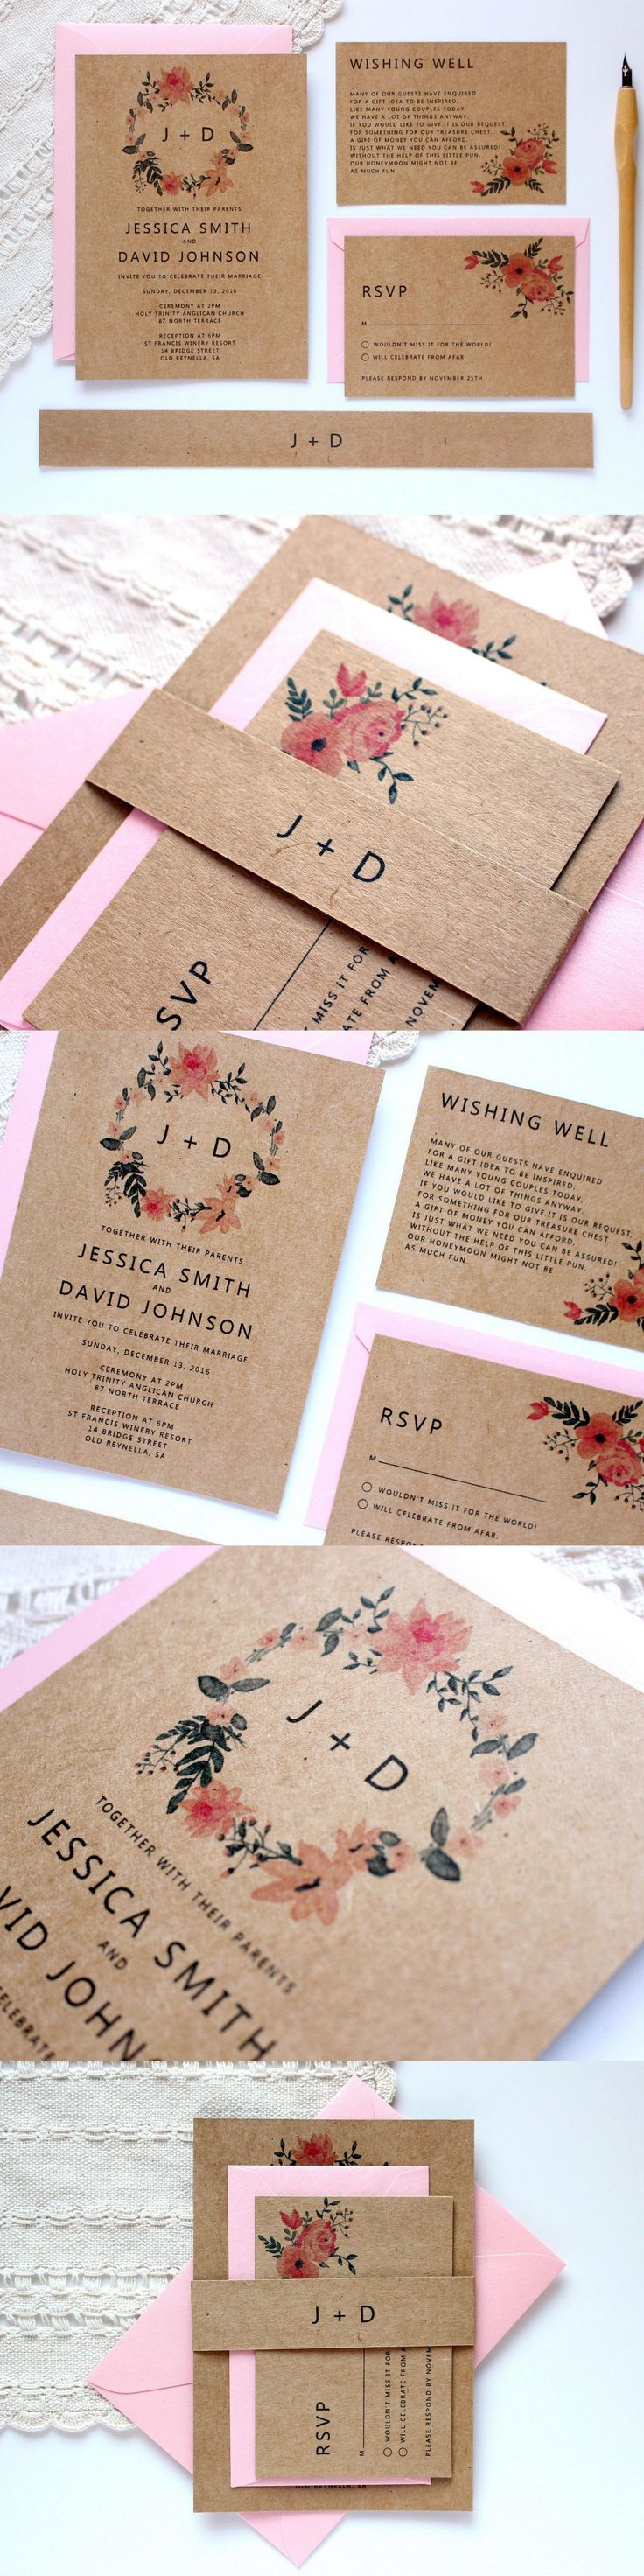 sister marriage invitation letter format%0A Kraft wedding invitation with pink floral wreath by Paper Bound Love   weddinginvitation